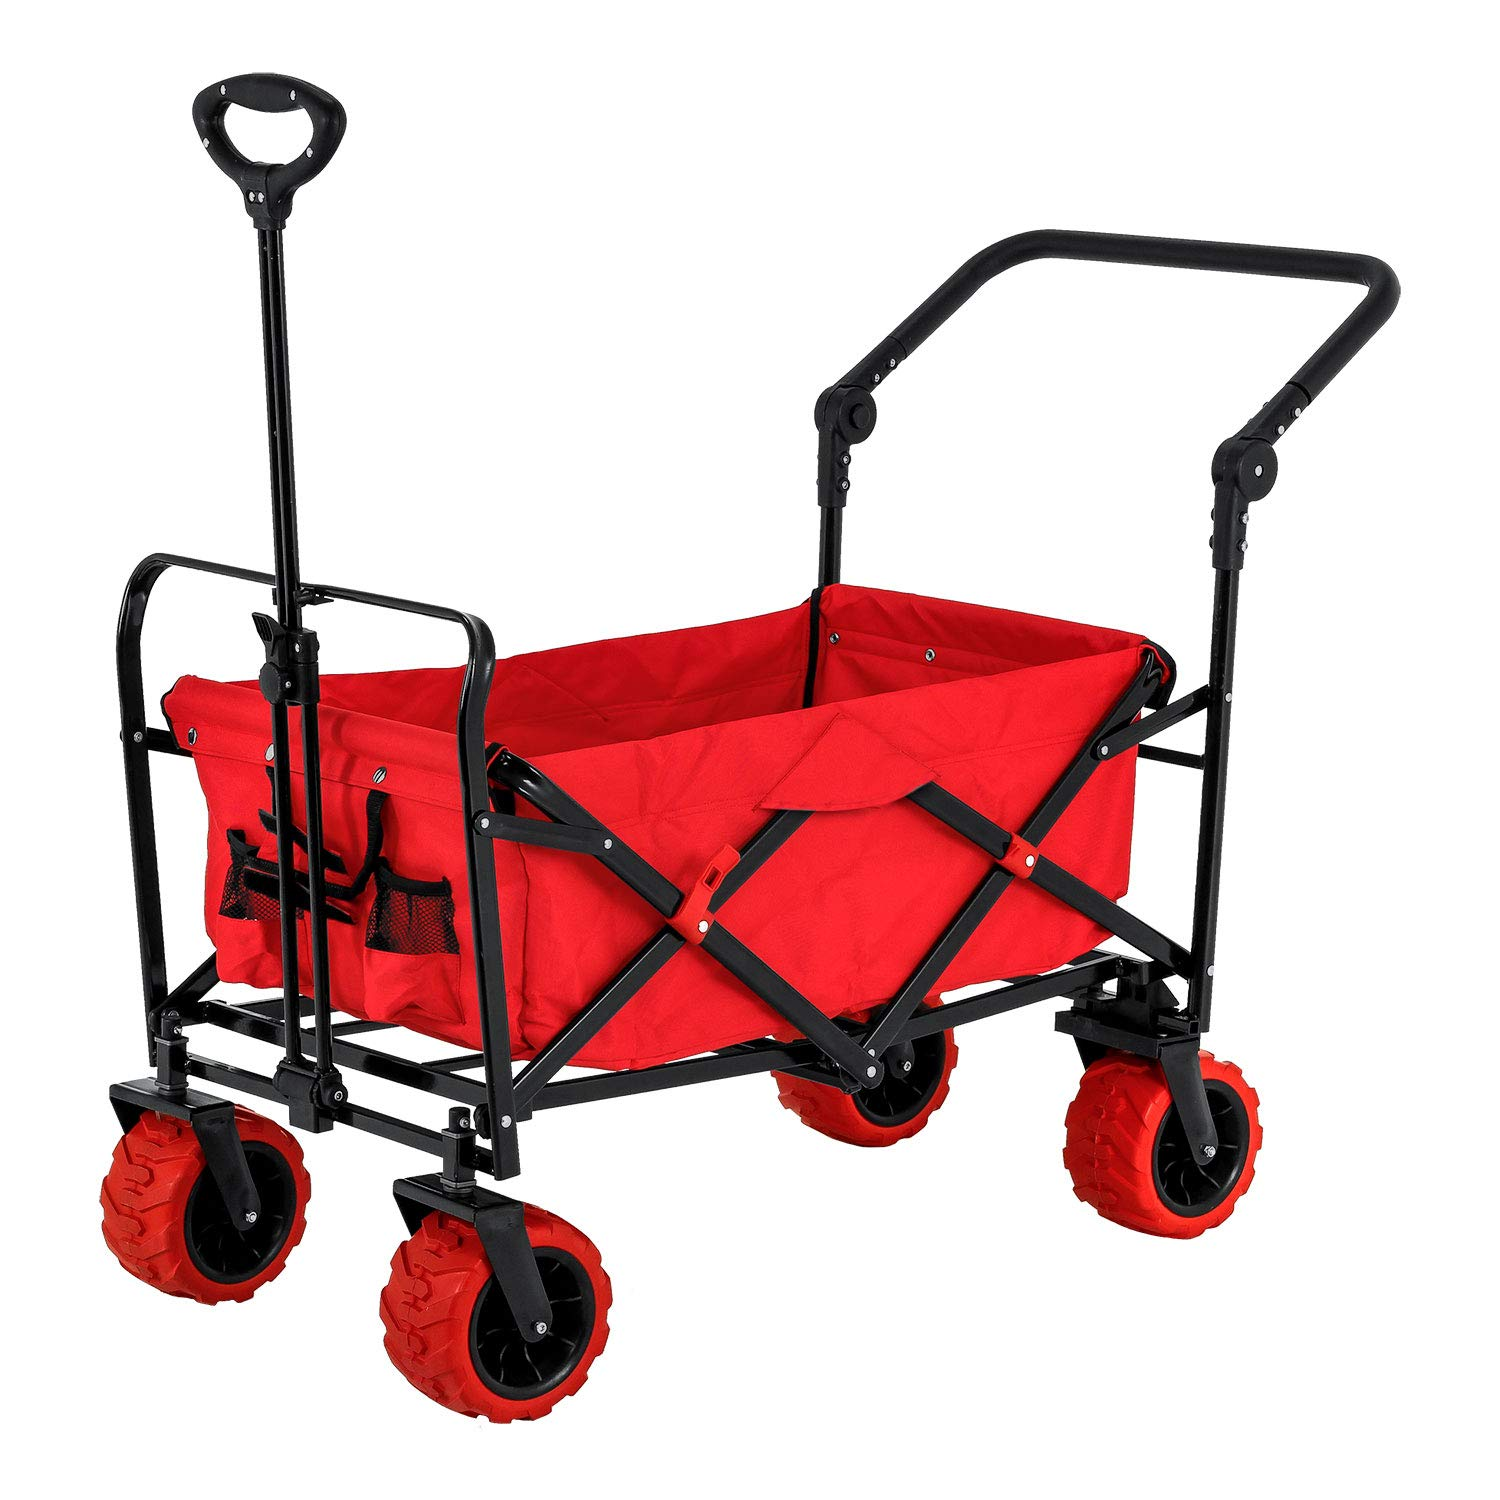 Red Wide Wheel Wagon All Terrain Folding Collapsible Utility Wagon with Push Bar - Portable Rolling Heavy Duty 265 Lbs. Capacity Canvas Fabric Cart Buggy - Beach, Garden, Sporting Events, Park, Picnic